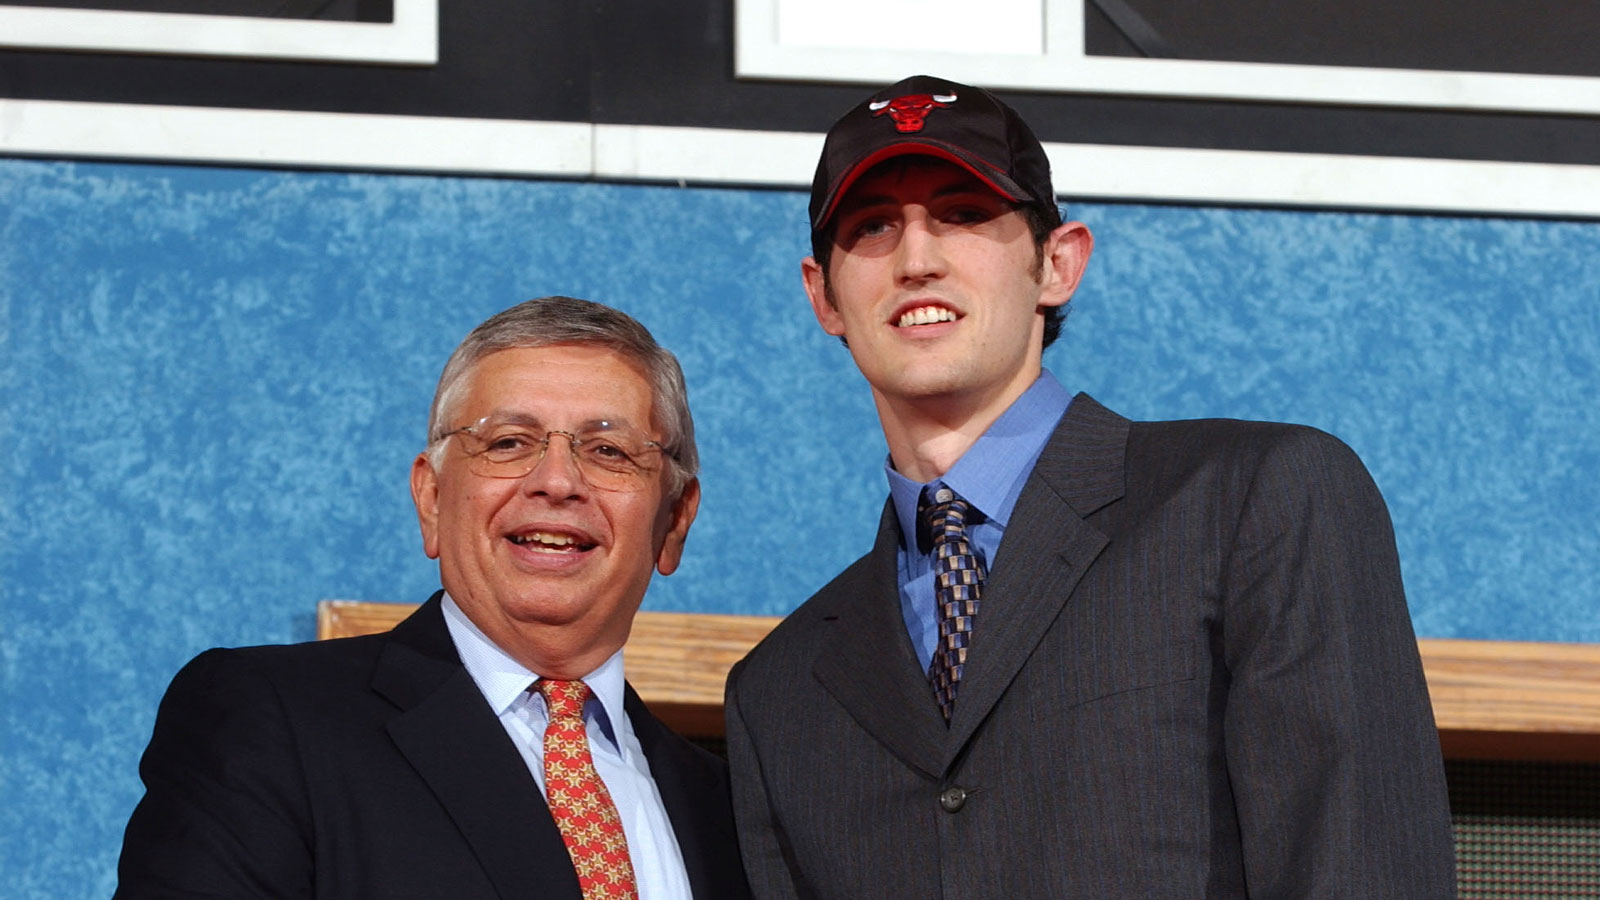 Kirk Hinrich posing for a photo with former NBA Commissioner David Stern after being drafted by the Bulls in 2003.